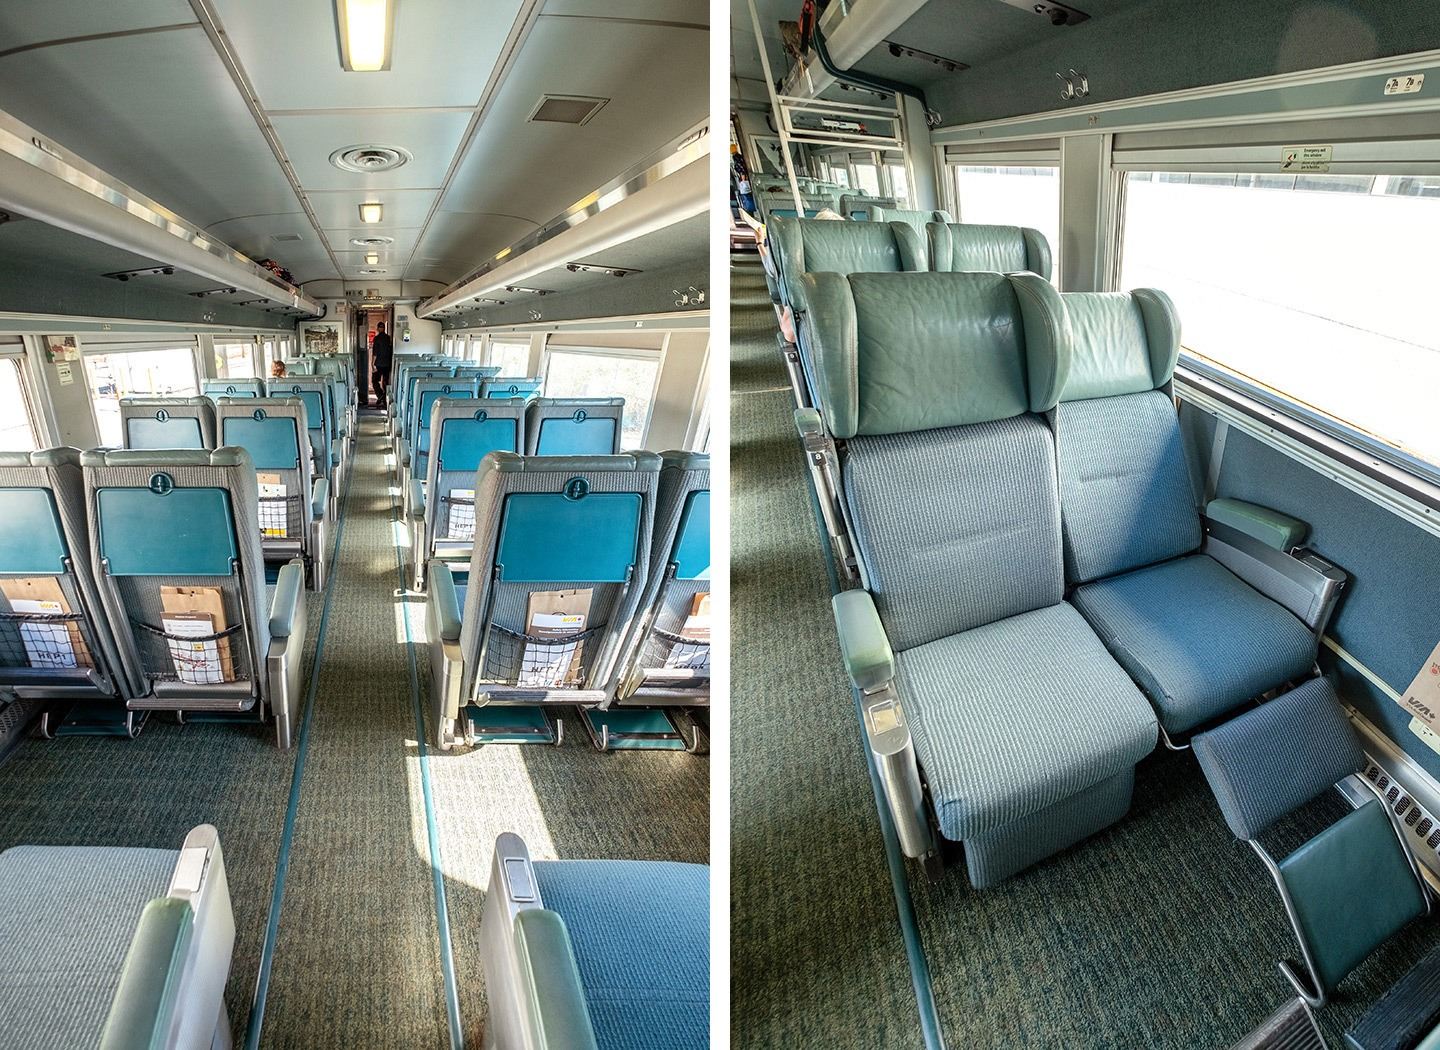 VIA Rail's economy sleeper seats